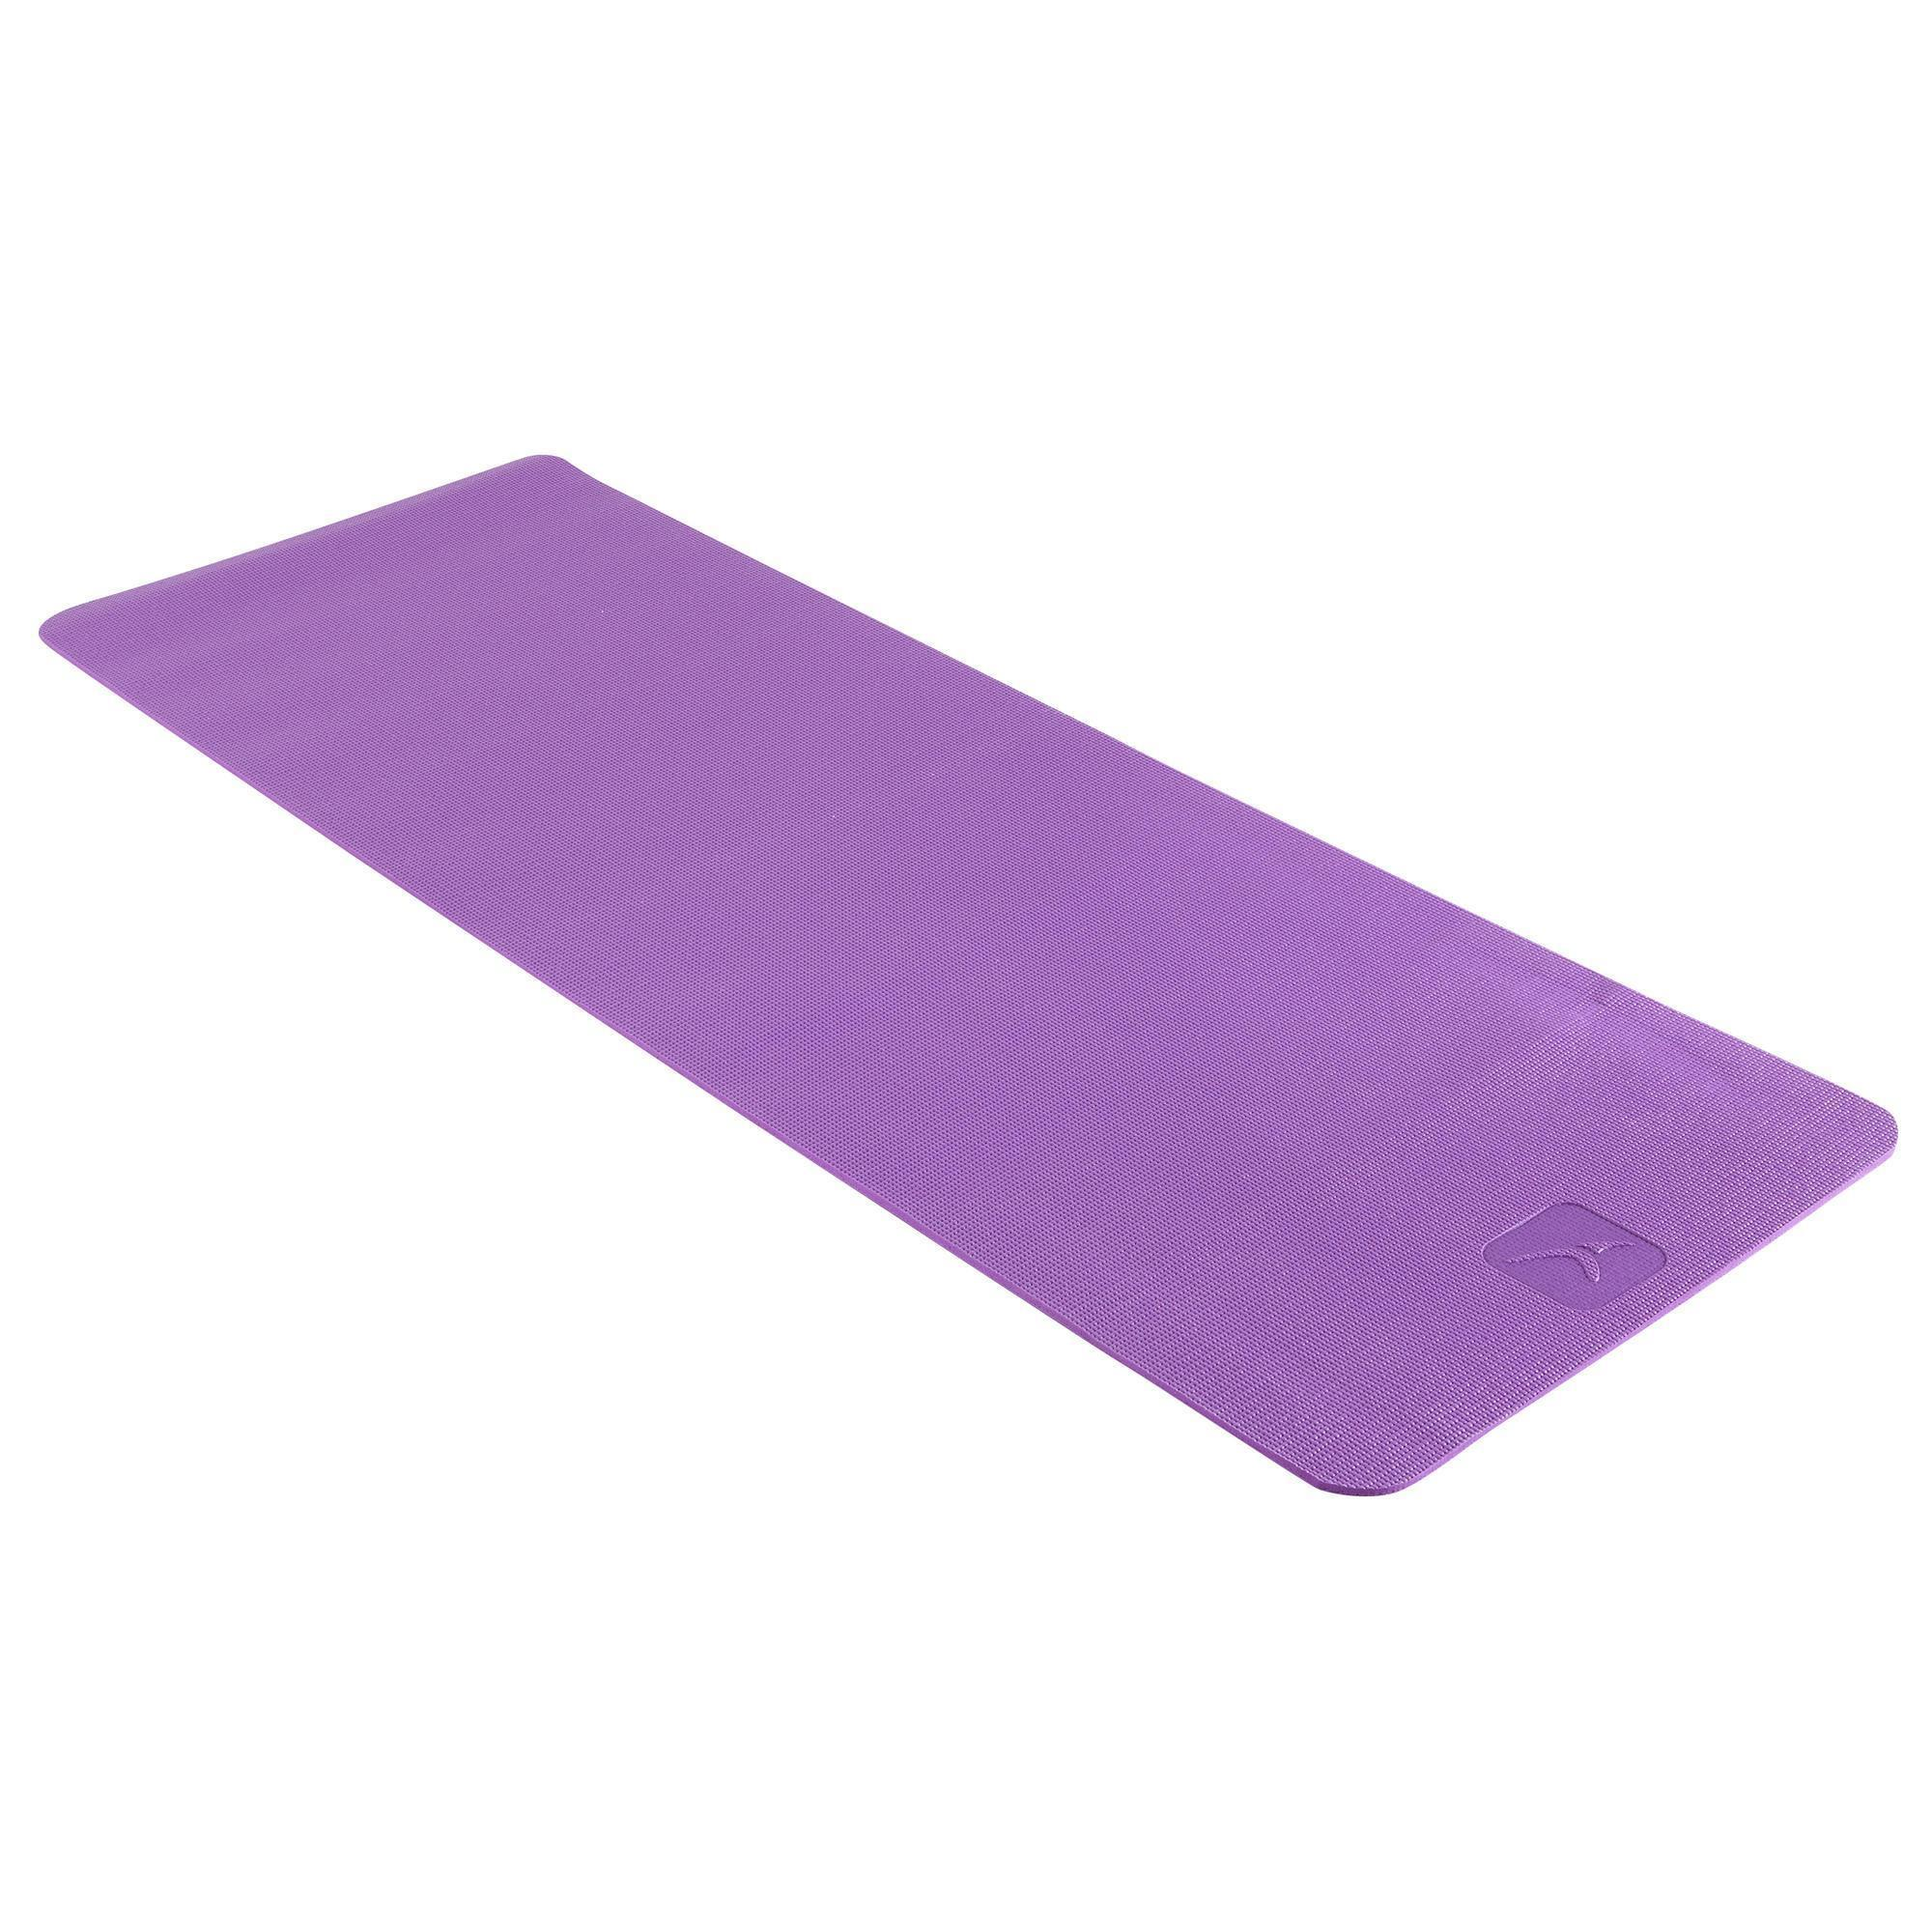 Gentle Yoga Mat 8mm Purple Domyos By Decathlon